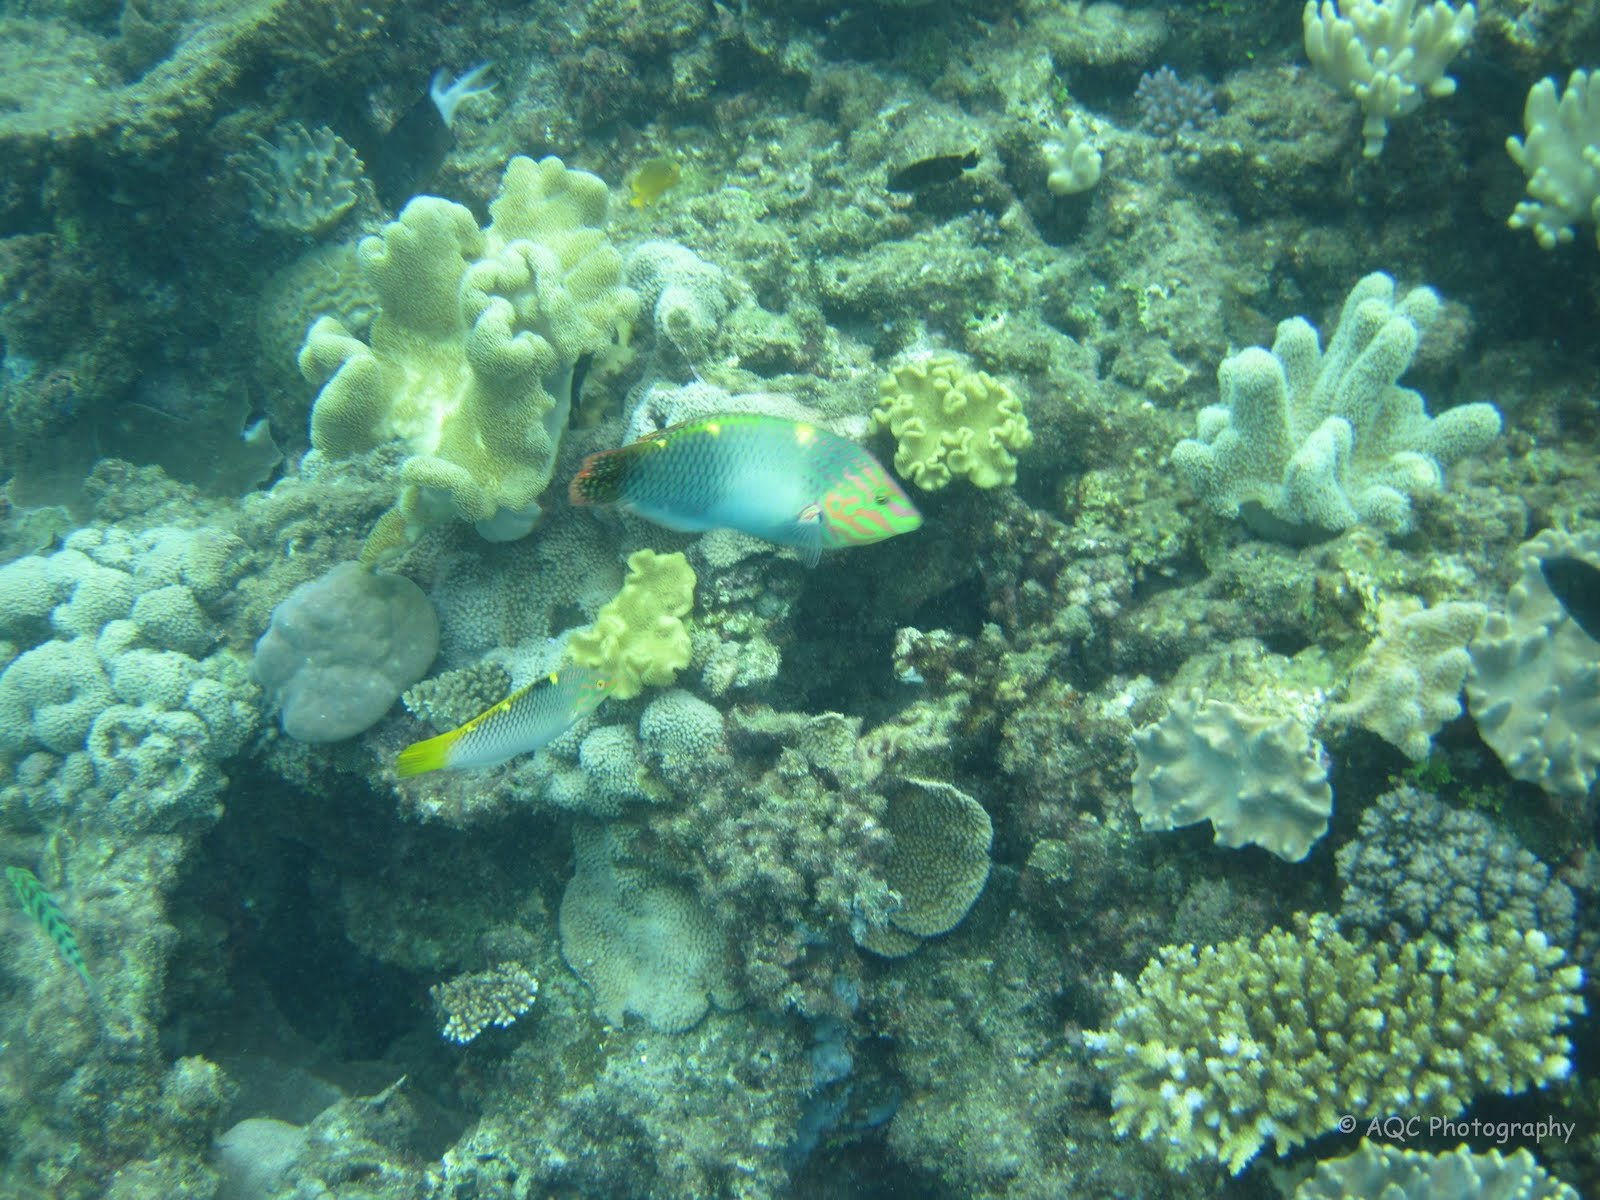 Great barrier reef fishes name that fish cheftonio 39 s blog for Great barrier reef fish